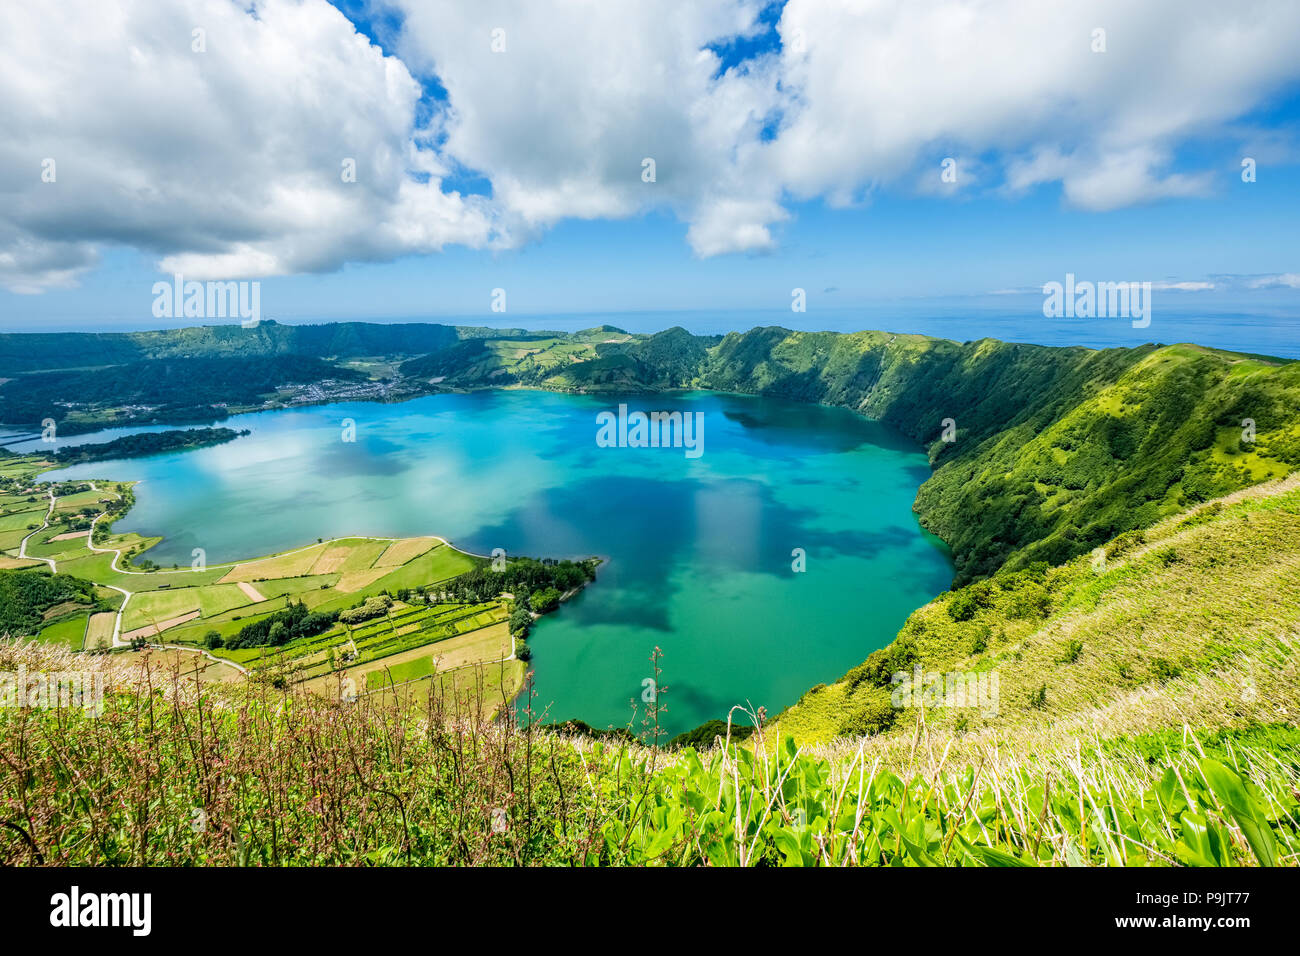 Sete Cidades, two lakes and a village in the dormant crater of a volcano on the island of Sao Miguel, The Azores - Stock Image